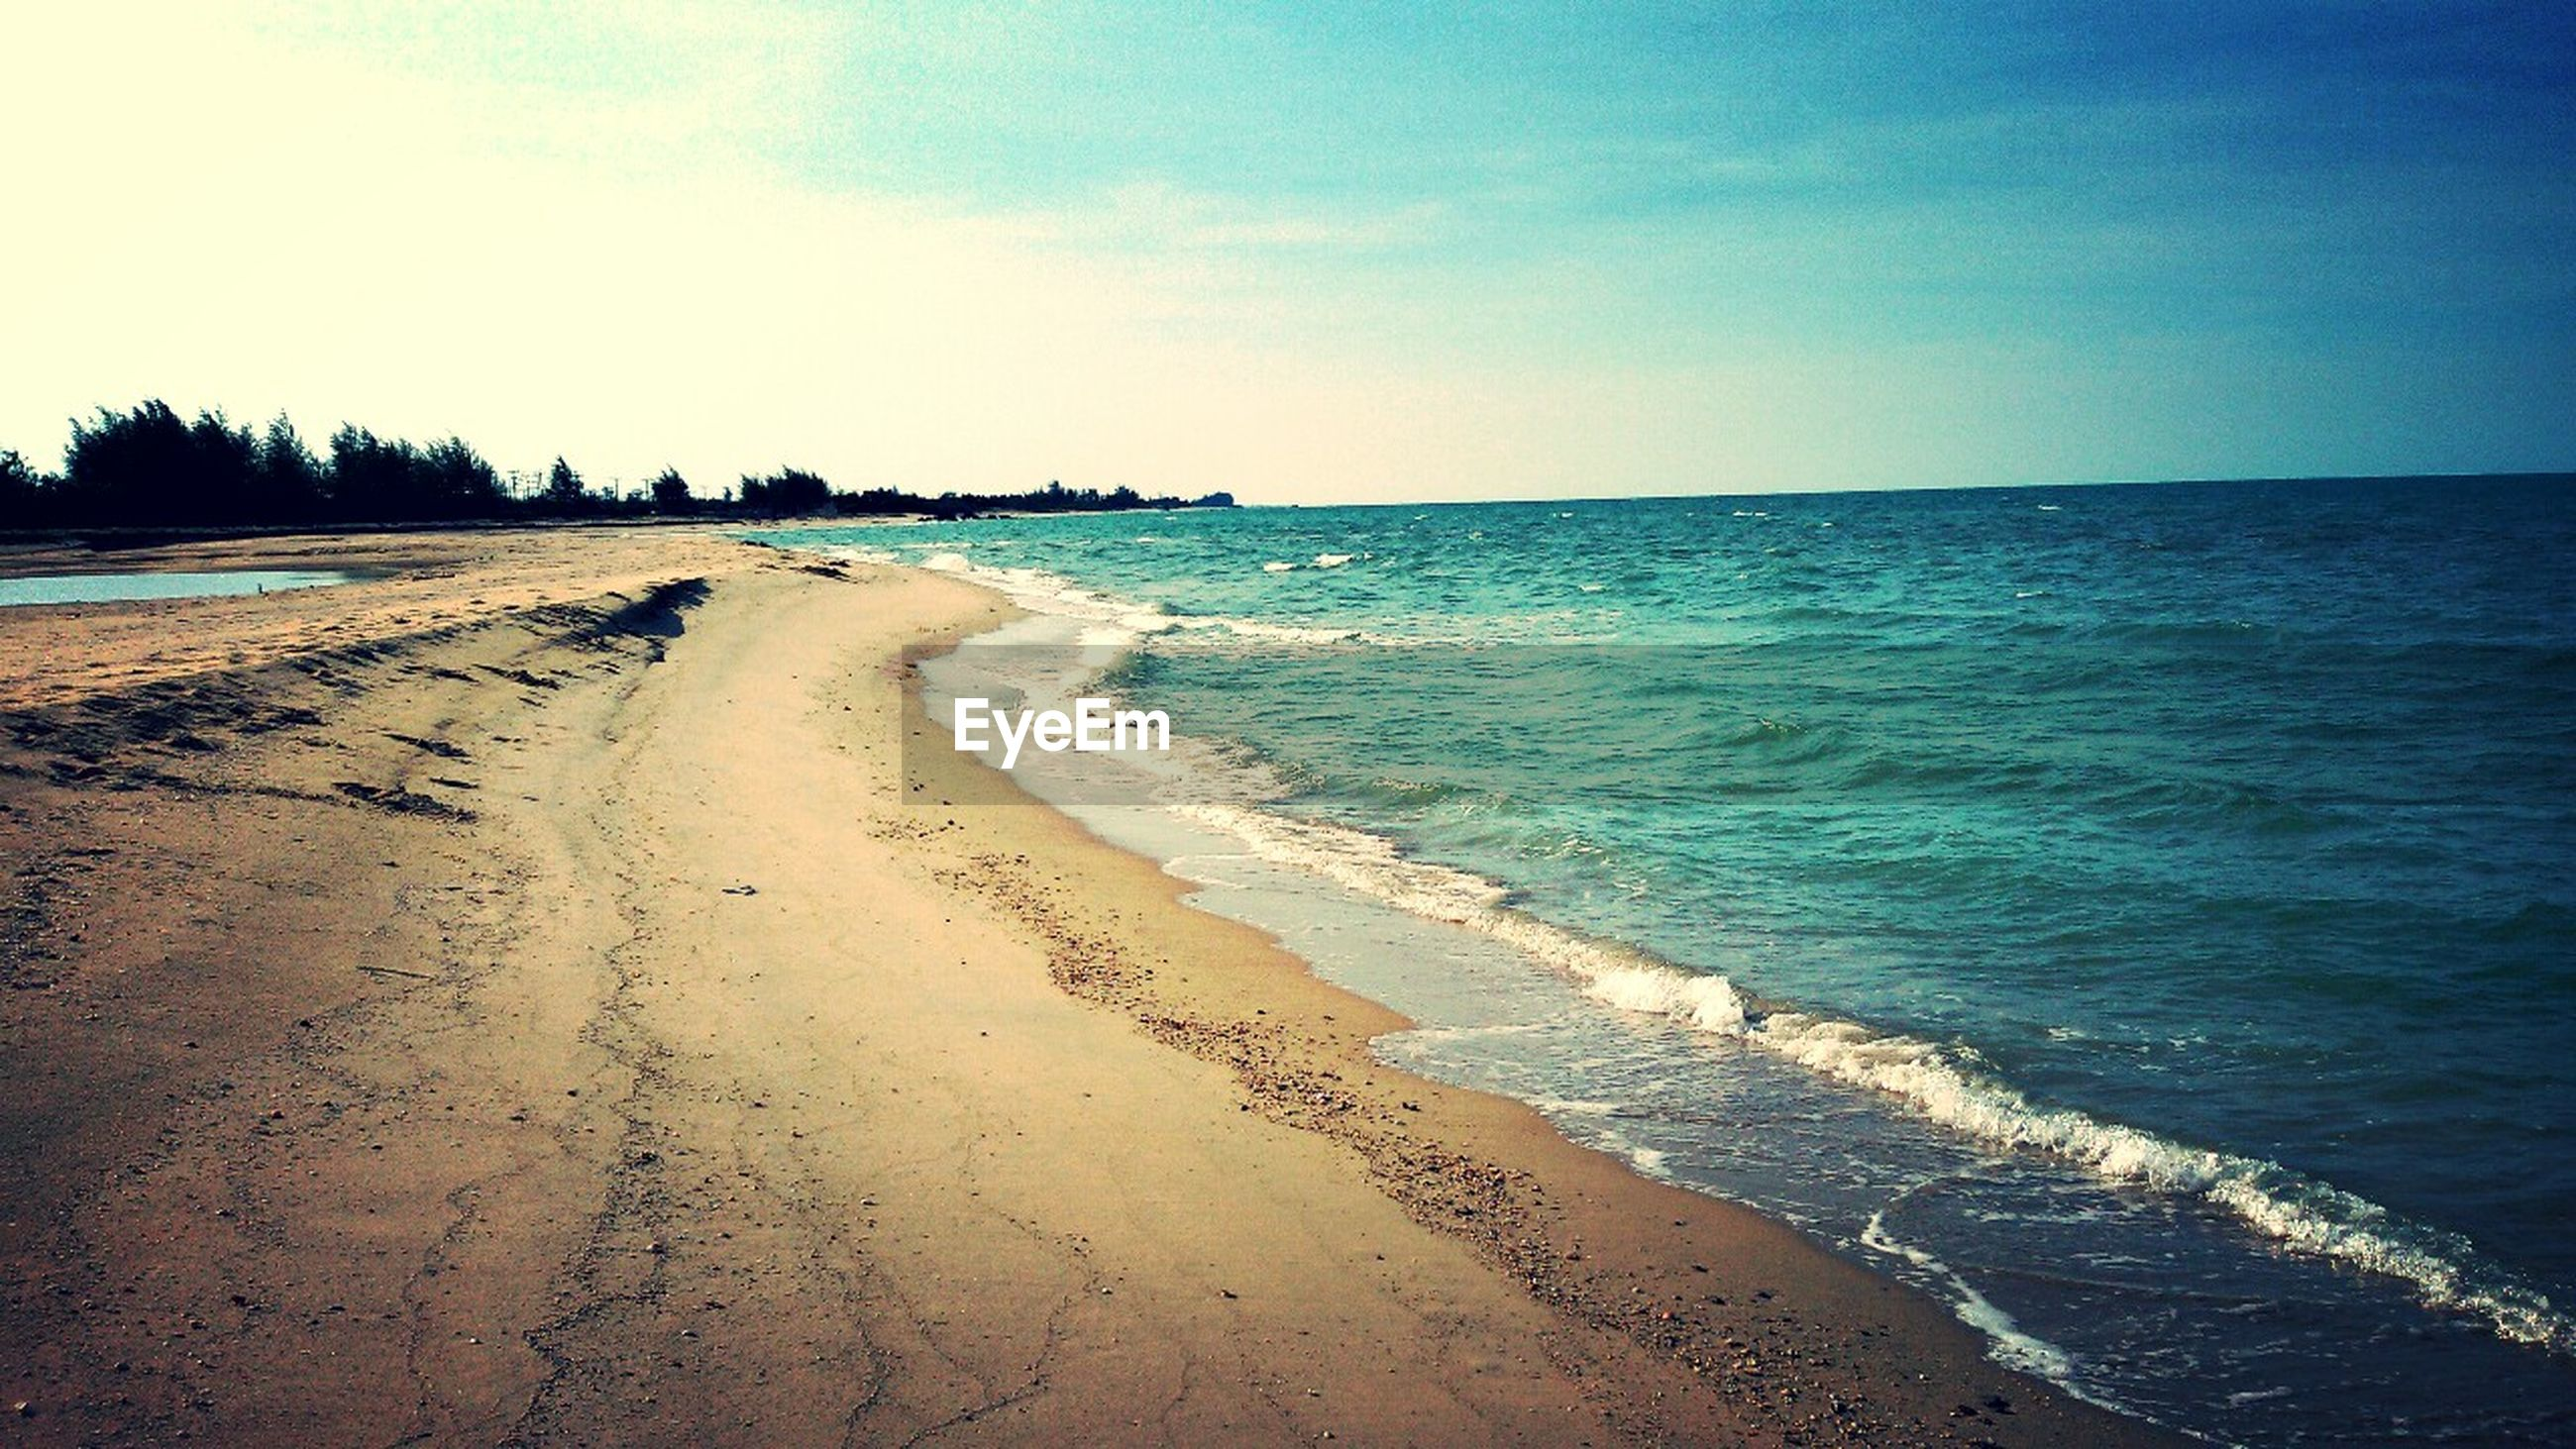 sea, beach, sand, water, shore, horizon over water, tranquil scene, scenics, tranquility, sky, beauty in nature, wave, coastline, nature, surf, blue, incidental people, idyllic, vacations, tide